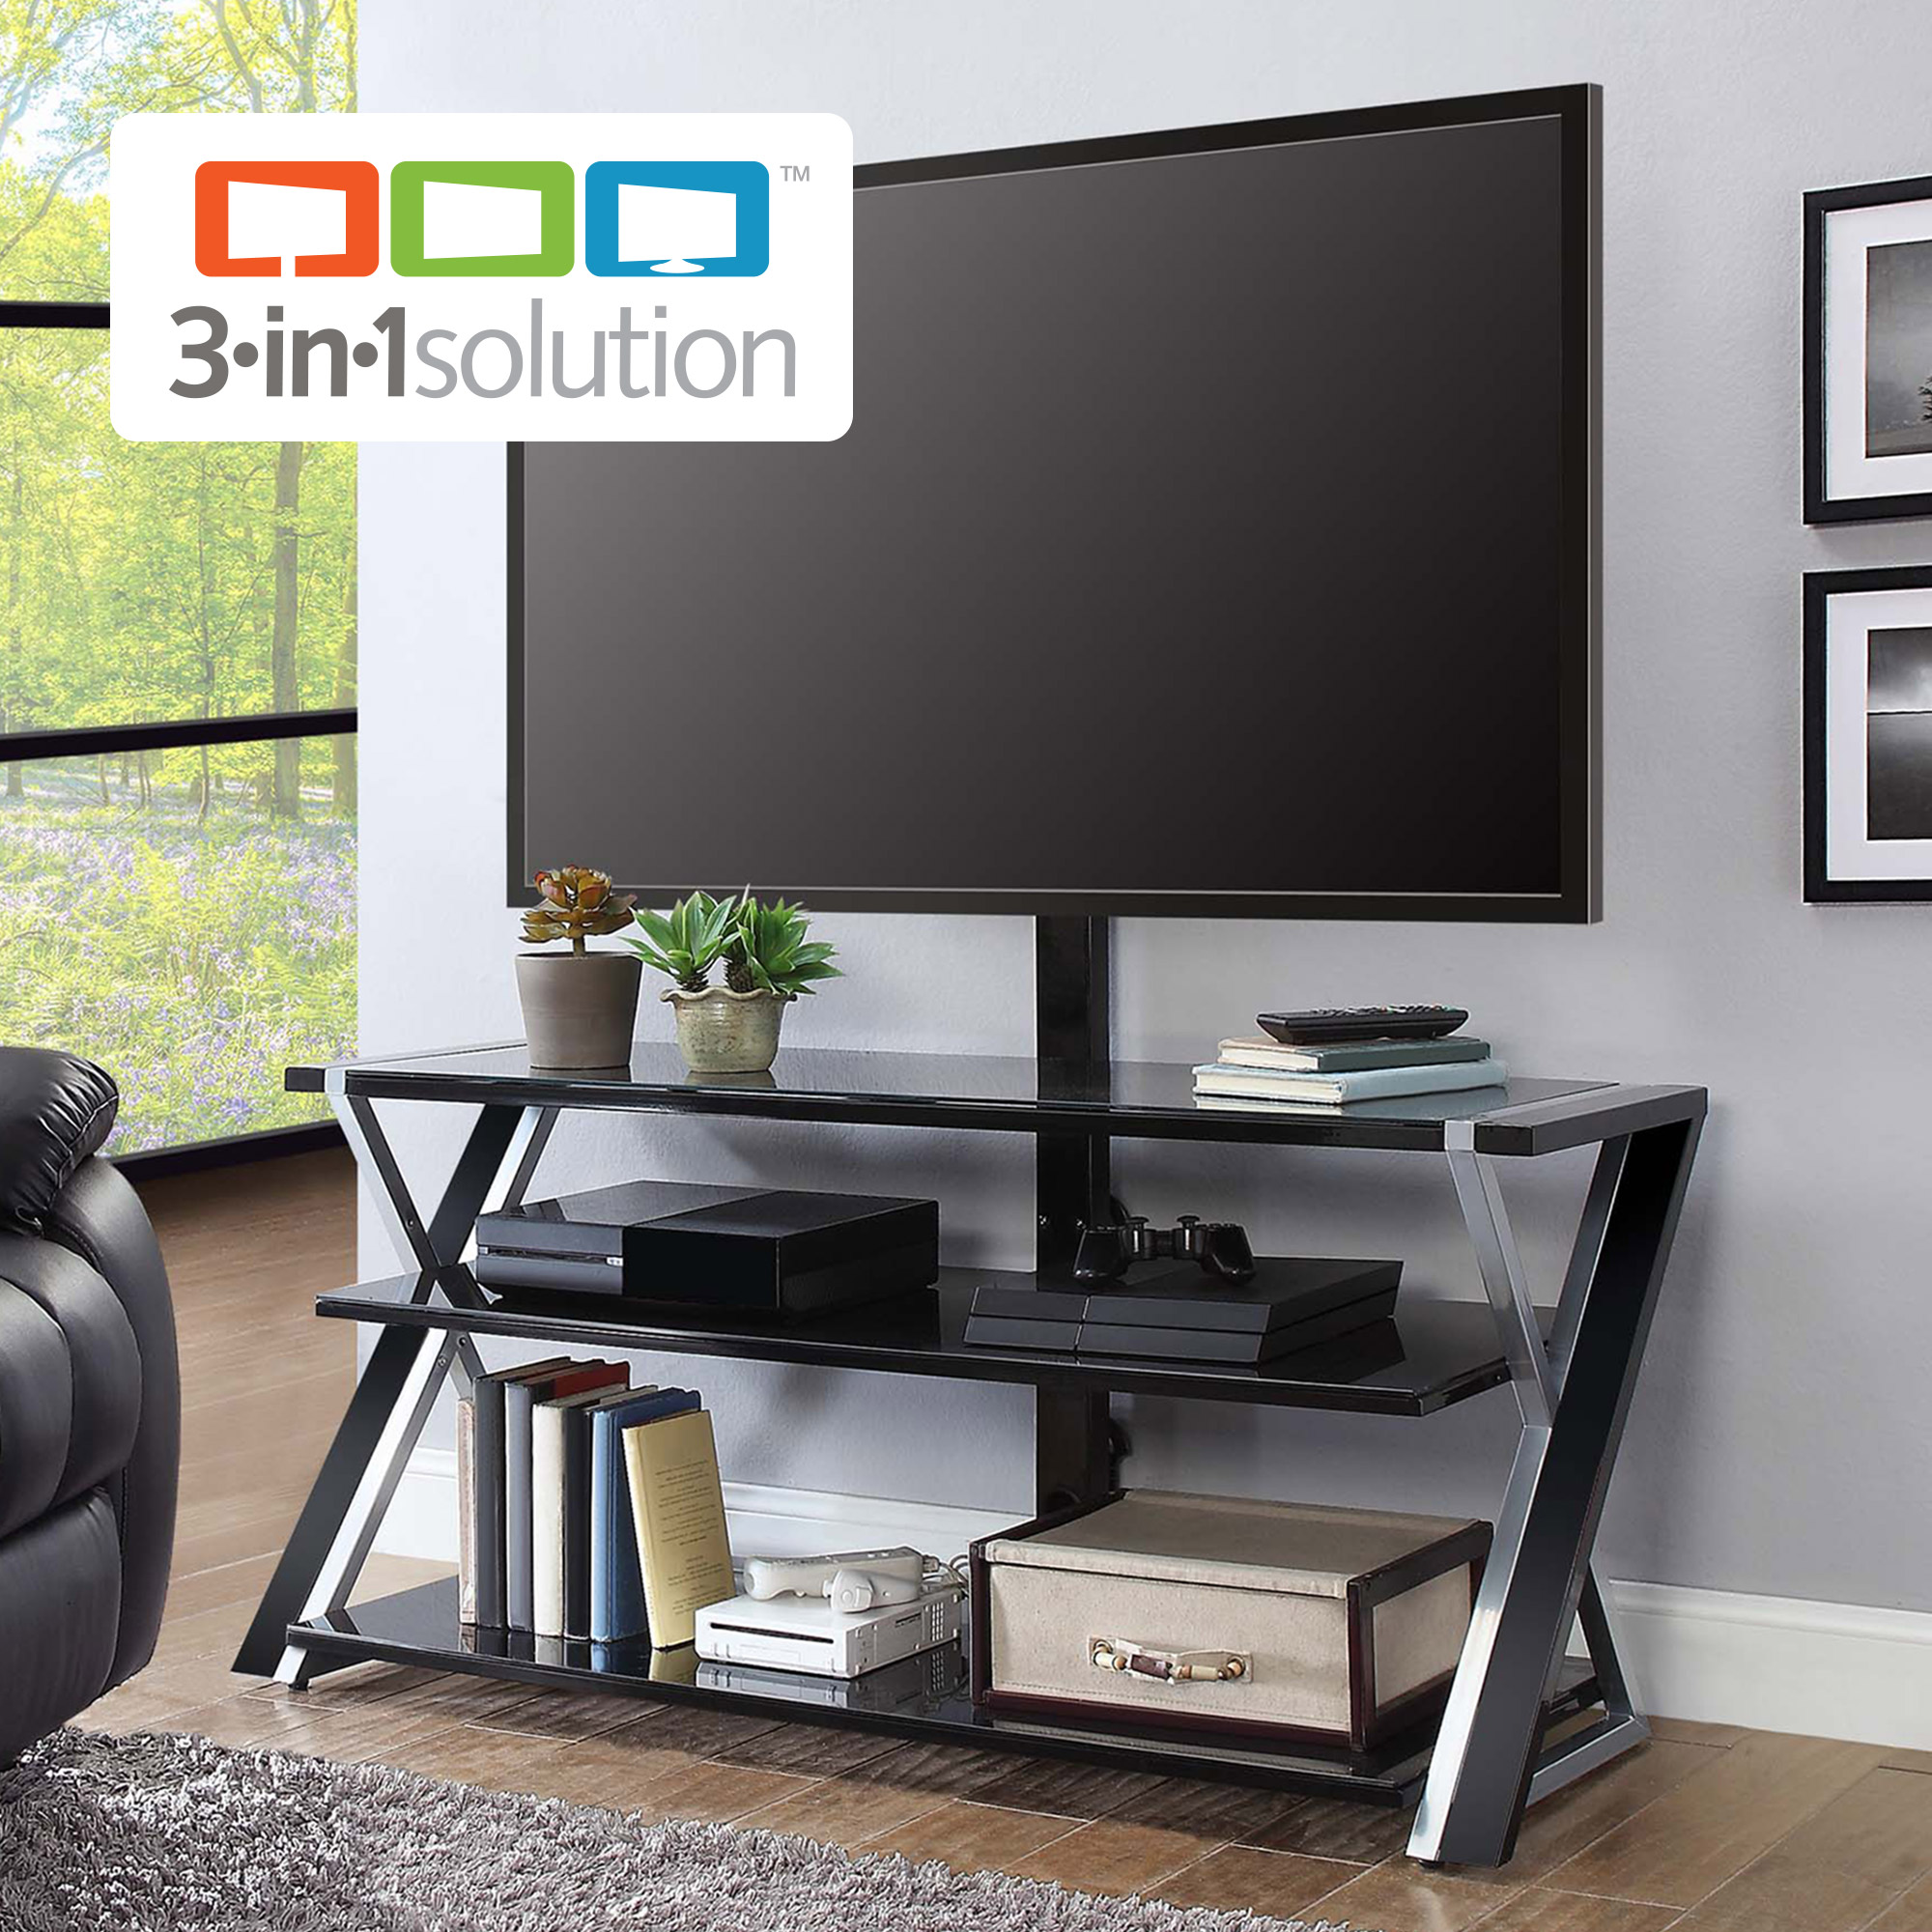 TV Stands & Entertainment Centers Walmart